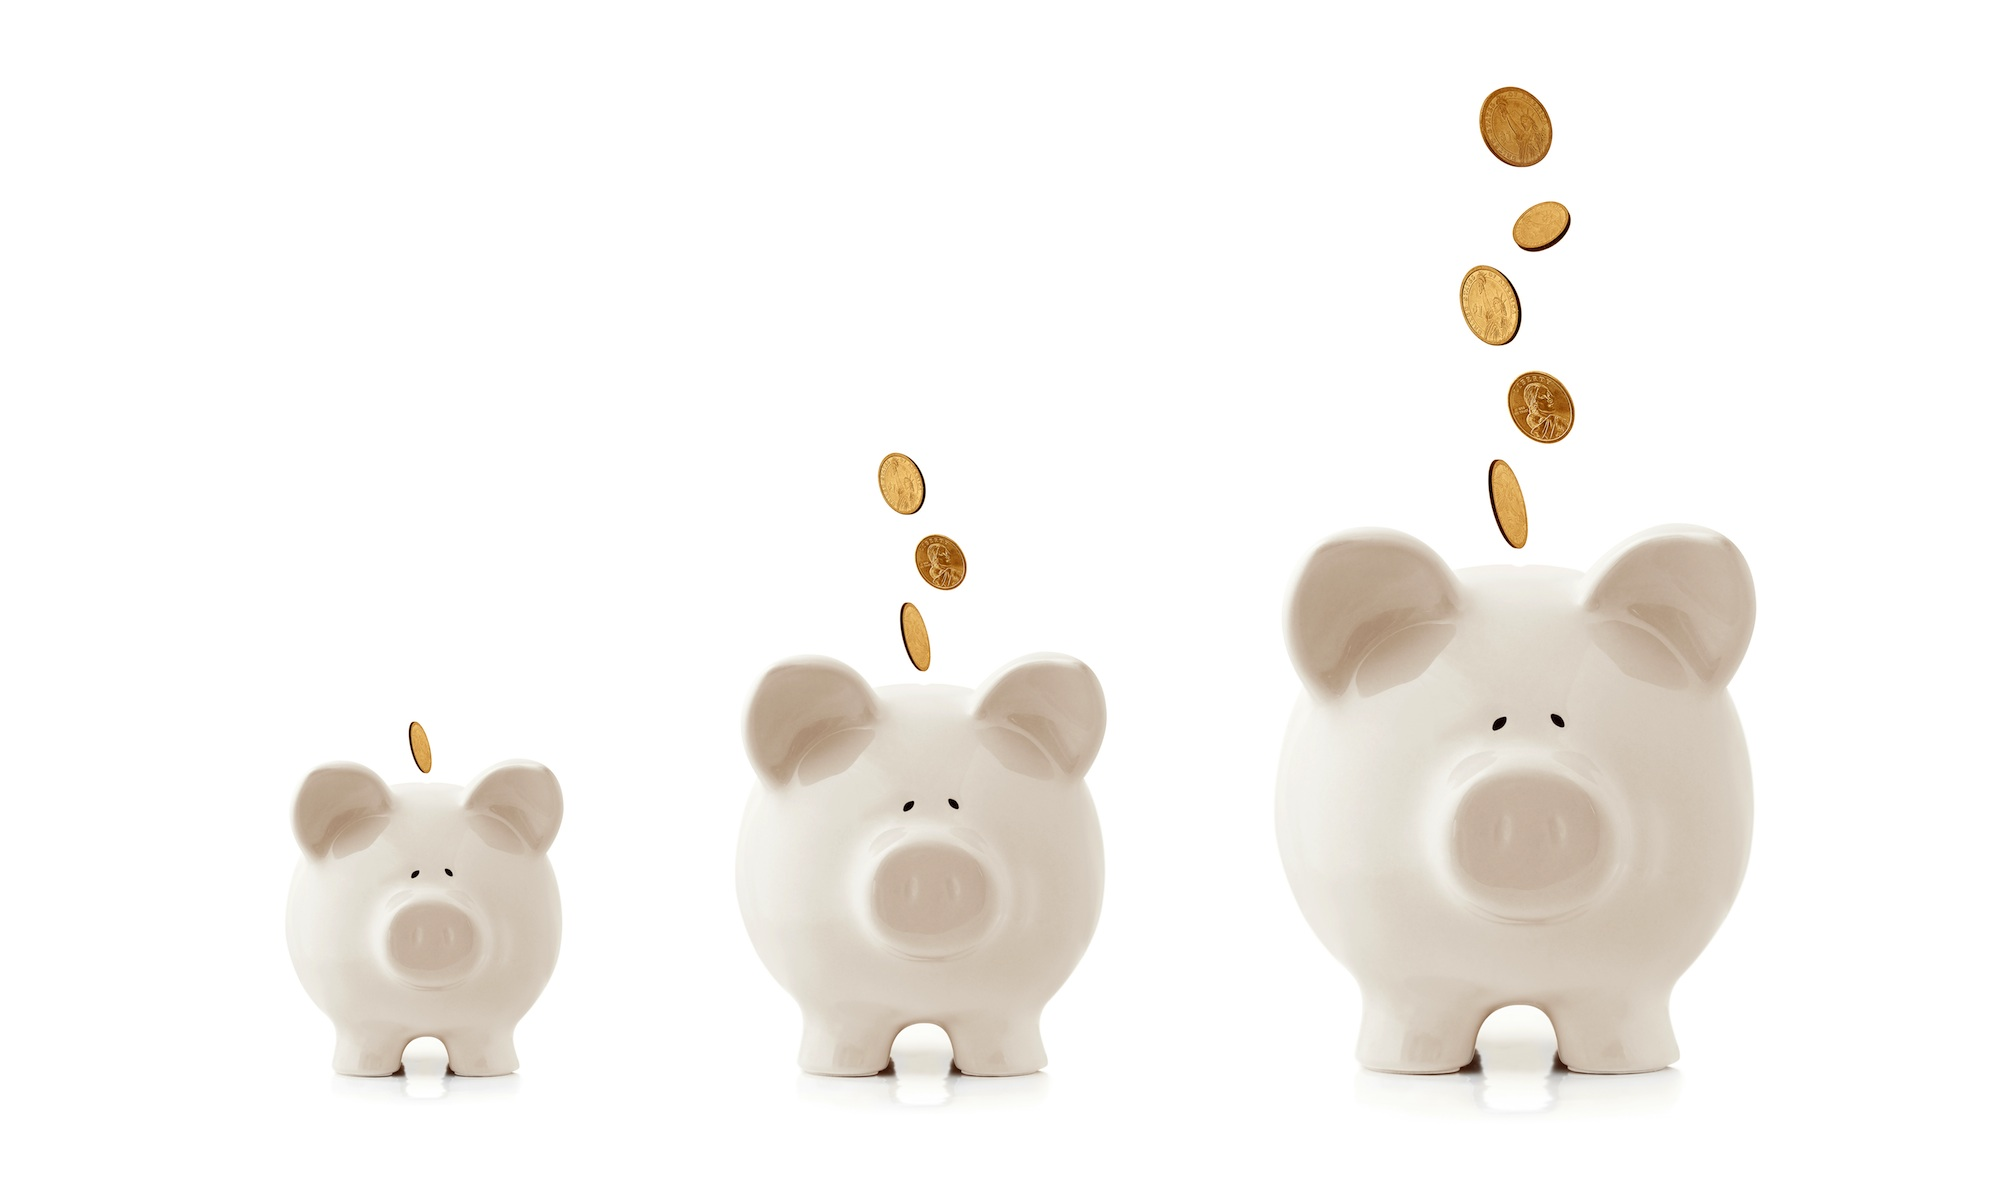 bare minimum skills required to work for yourself piggy banks